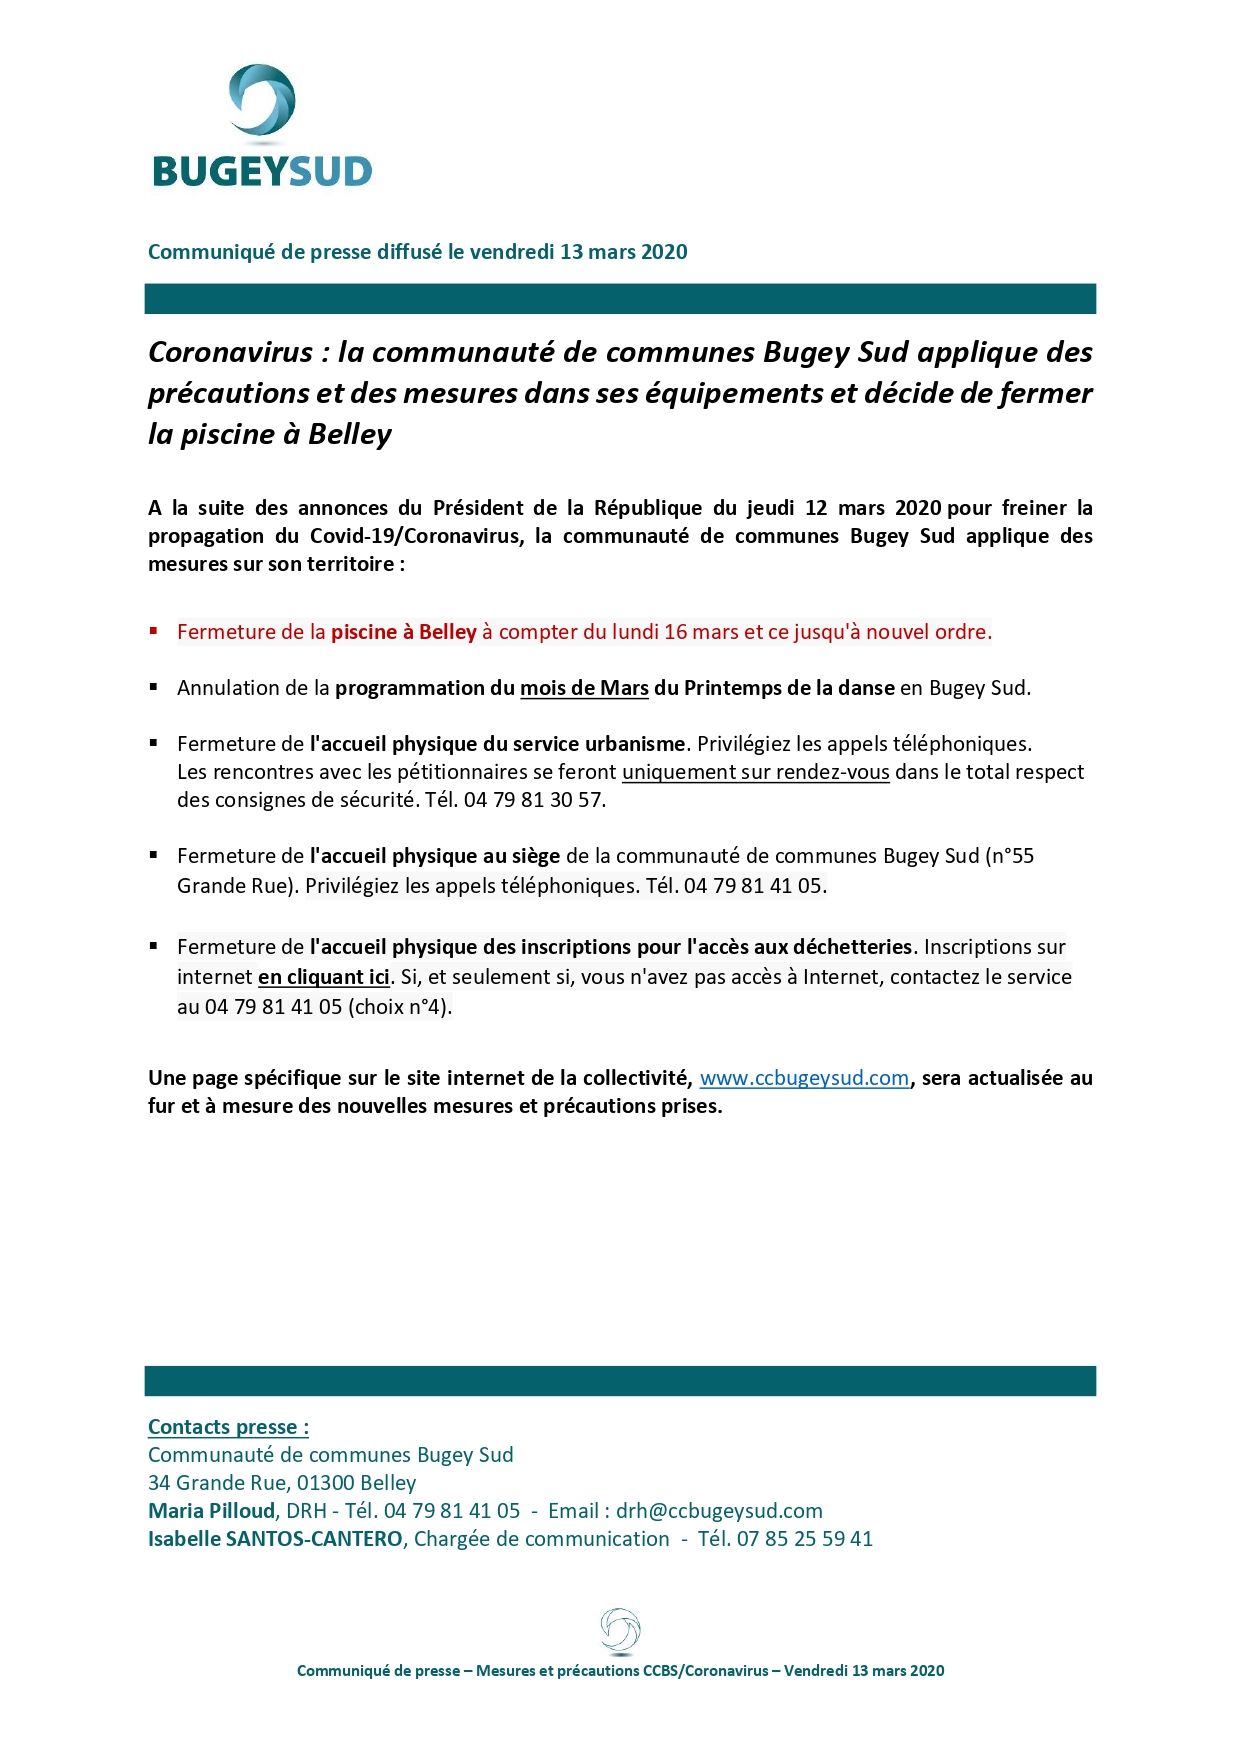 CP_mesures et precautions CCBS_Covid19_13032020_page-0001.jpg (561 KB)